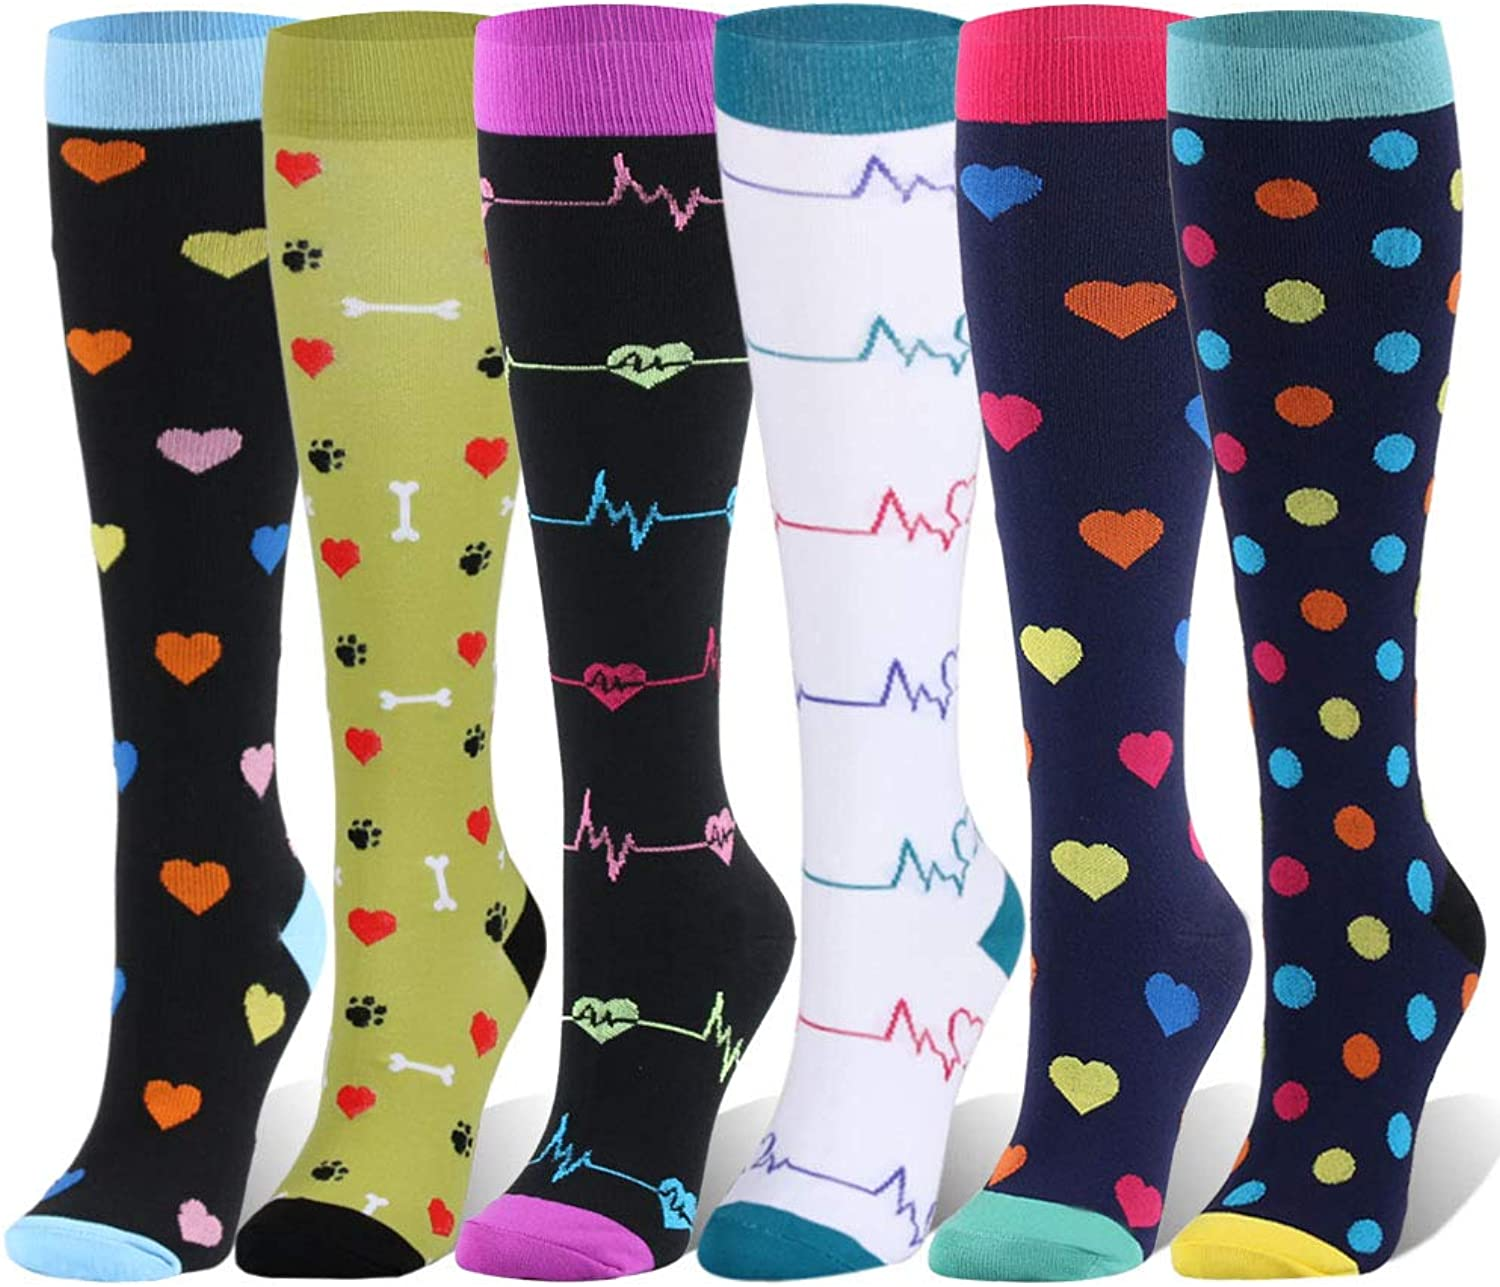 Compression Socks For Women and Men  2025mmHg 7 Pairs BEST Stockings for Running, Athletic, Edema, Diabetic, Varicose Veins, Travel, Pregnancy & Maternity